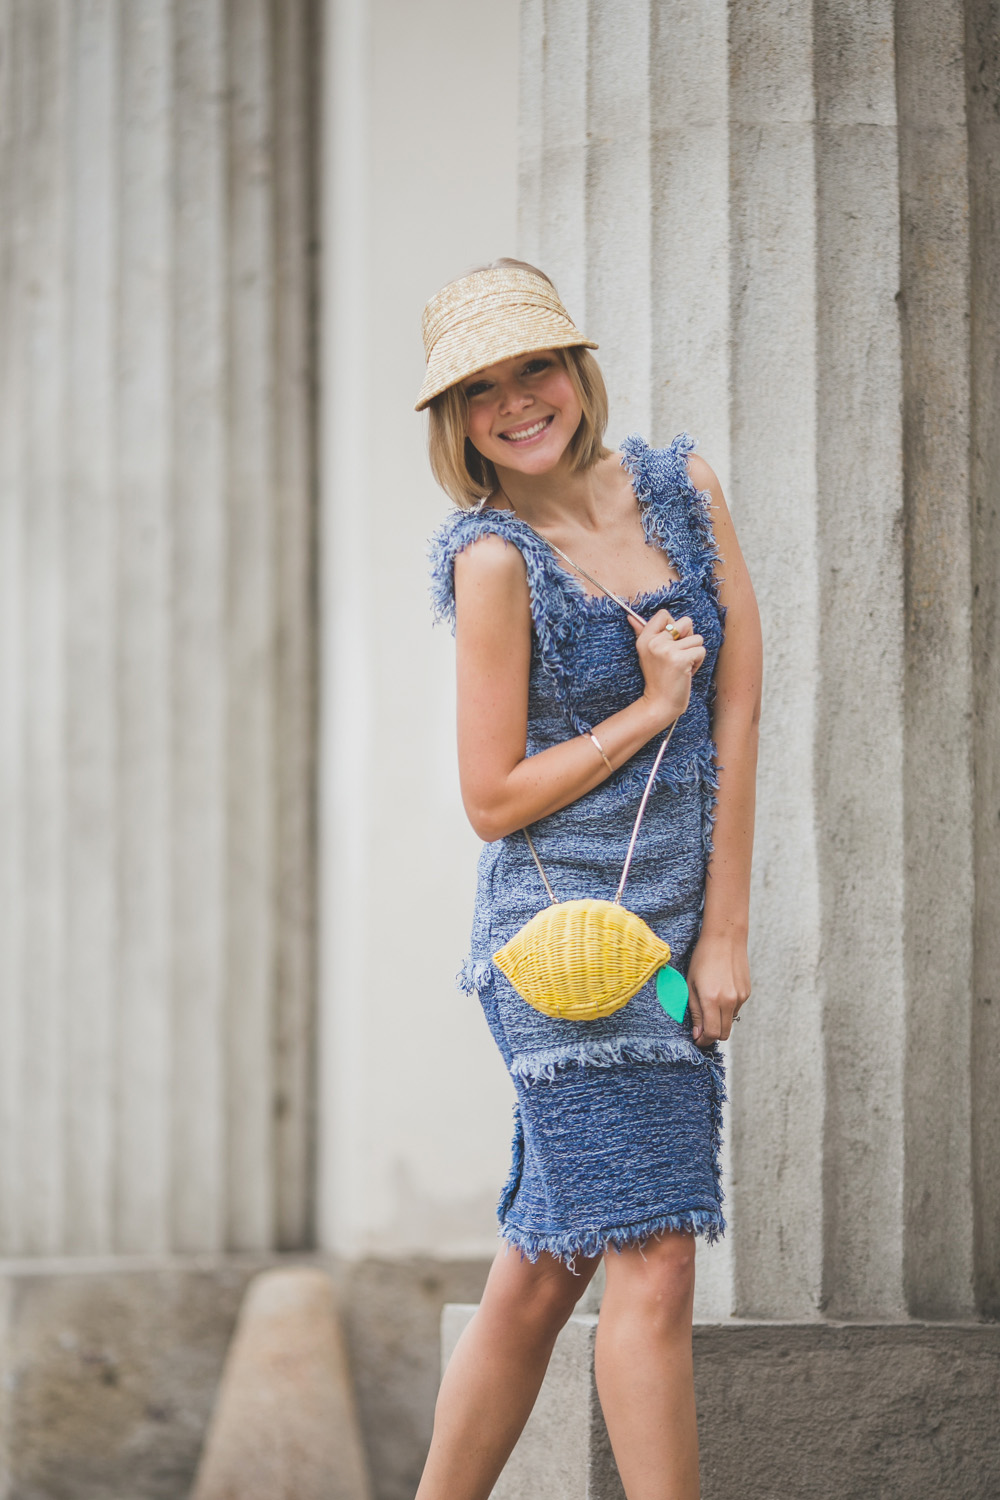 darya kamalova thecablook com russian italian fashion lifestyle blogger in milan for mfw ss15 wearing m missoni denim dress burberry prosum wedges kate spade lemon bag asos visor straw hat casadei atos lombardini presentation -4959